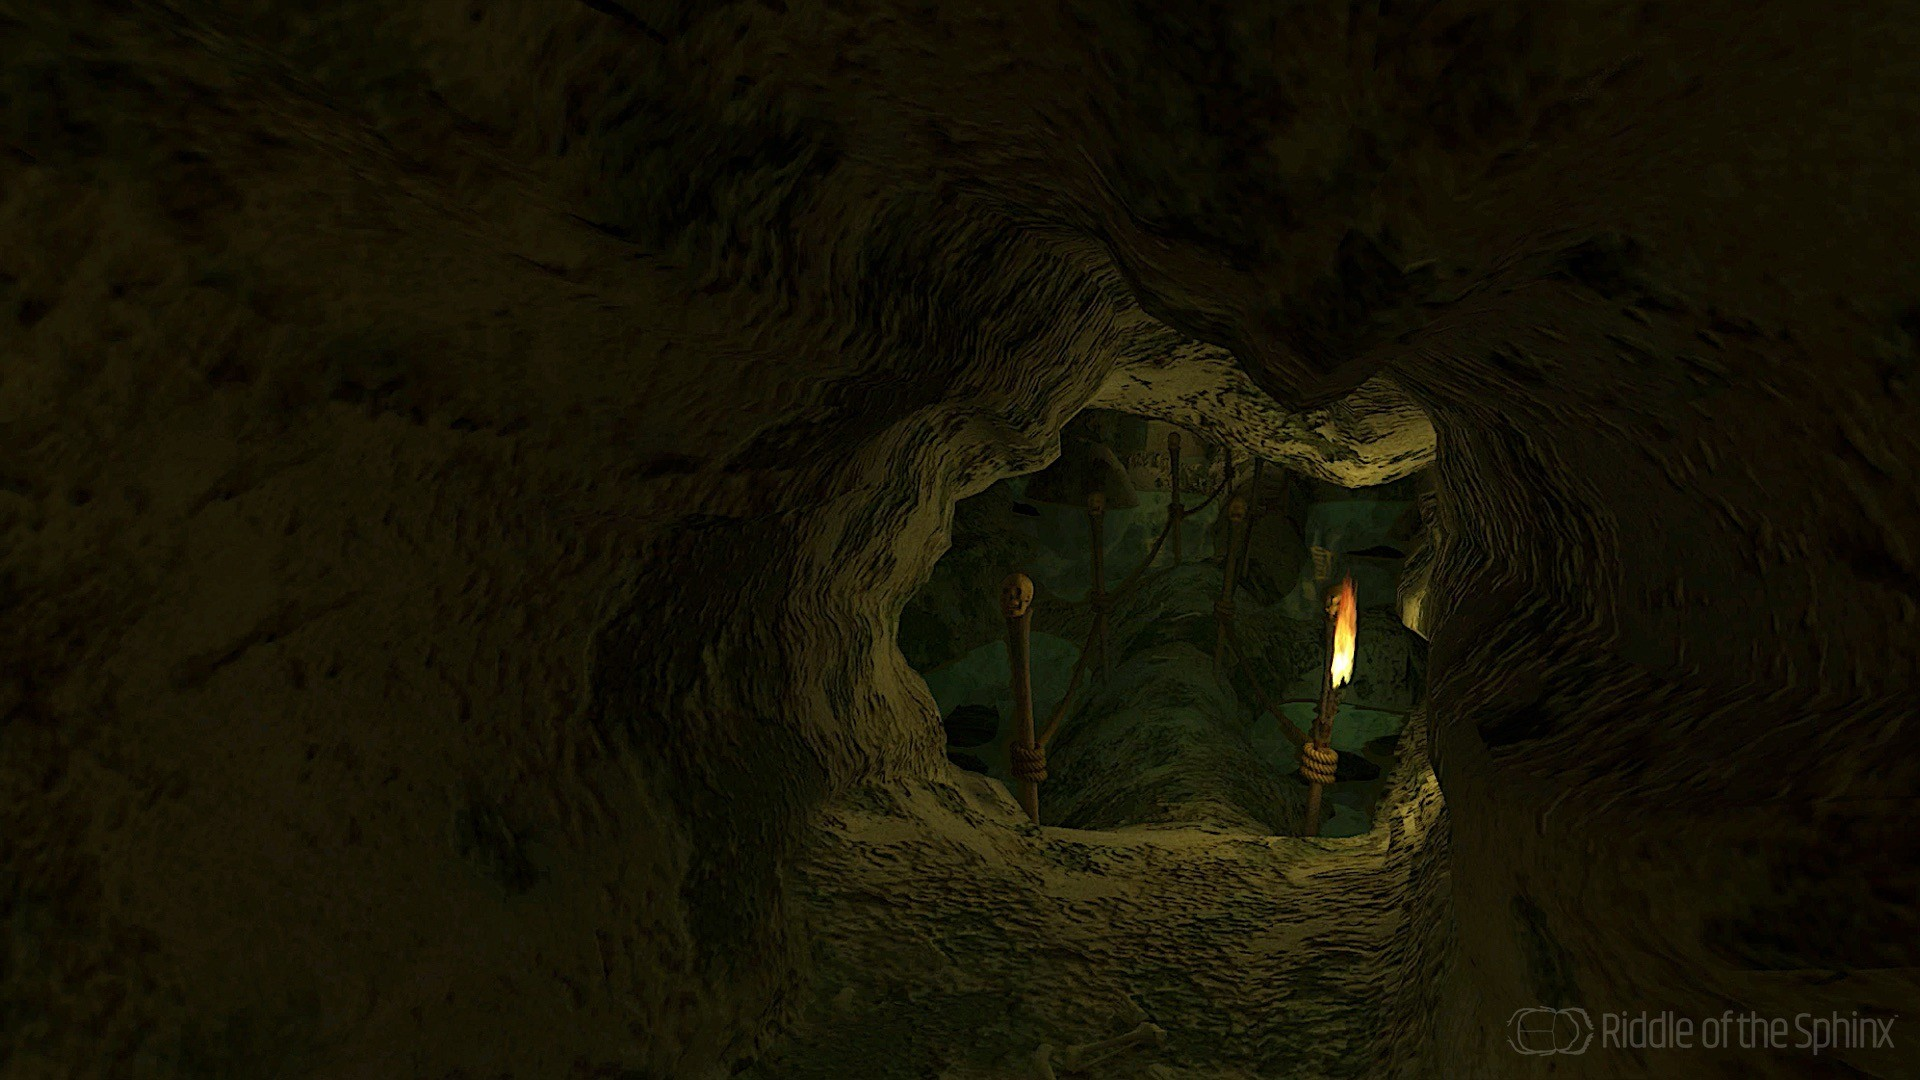 riddle-of-the-sphinx-enhanced-pc-screenshot-3